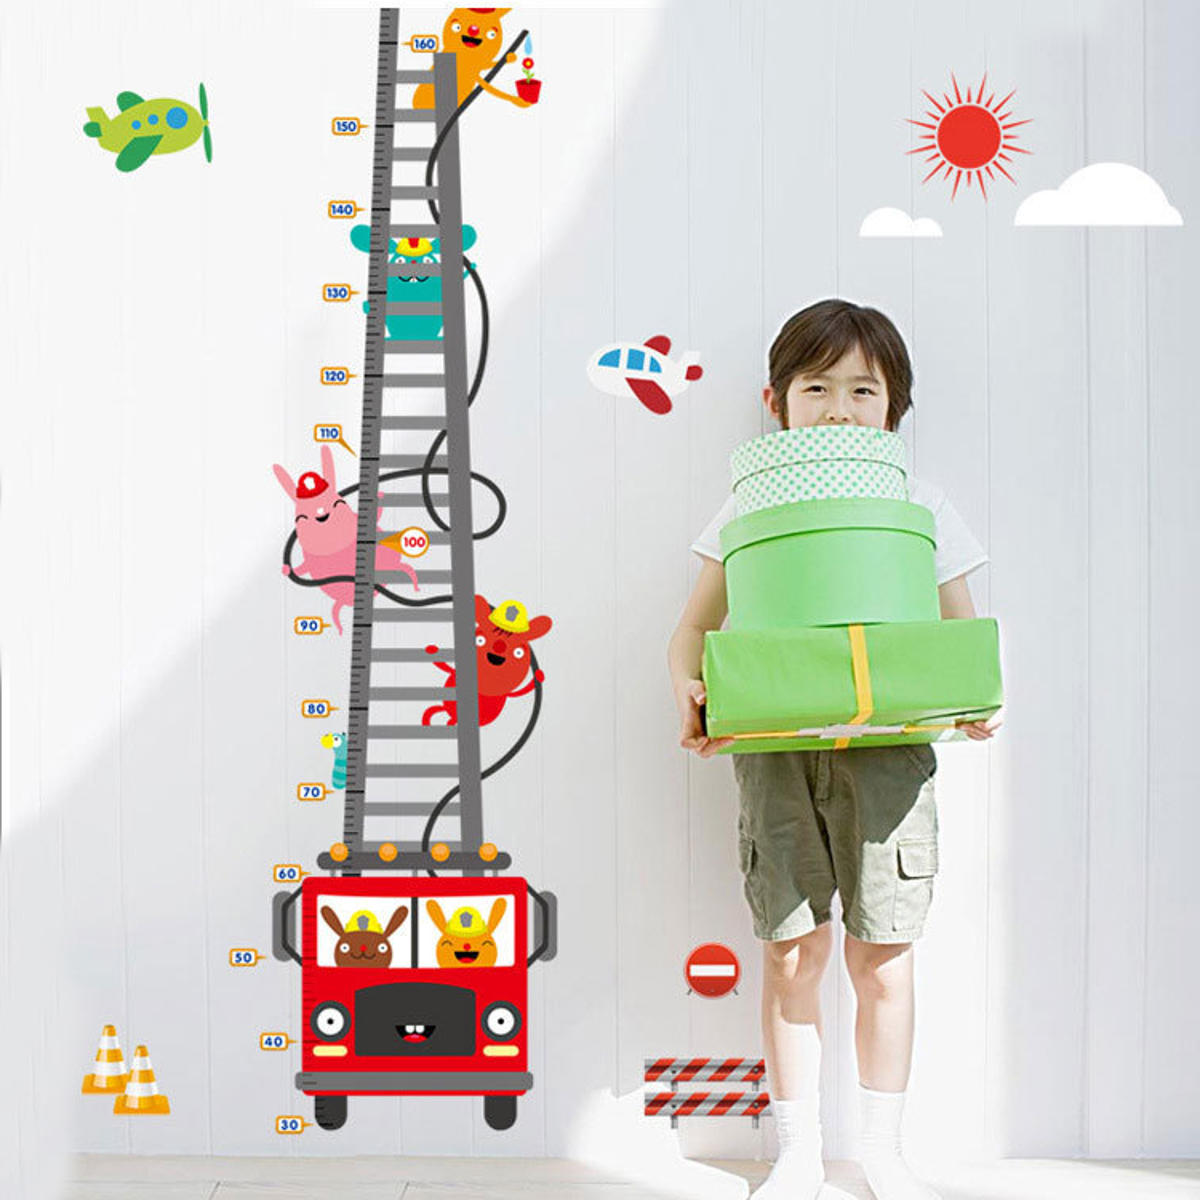 1Pcs Cute Truck Height Measure Wall Sticker Mural Decals Home Room Decoration Child Growth Chart Toys